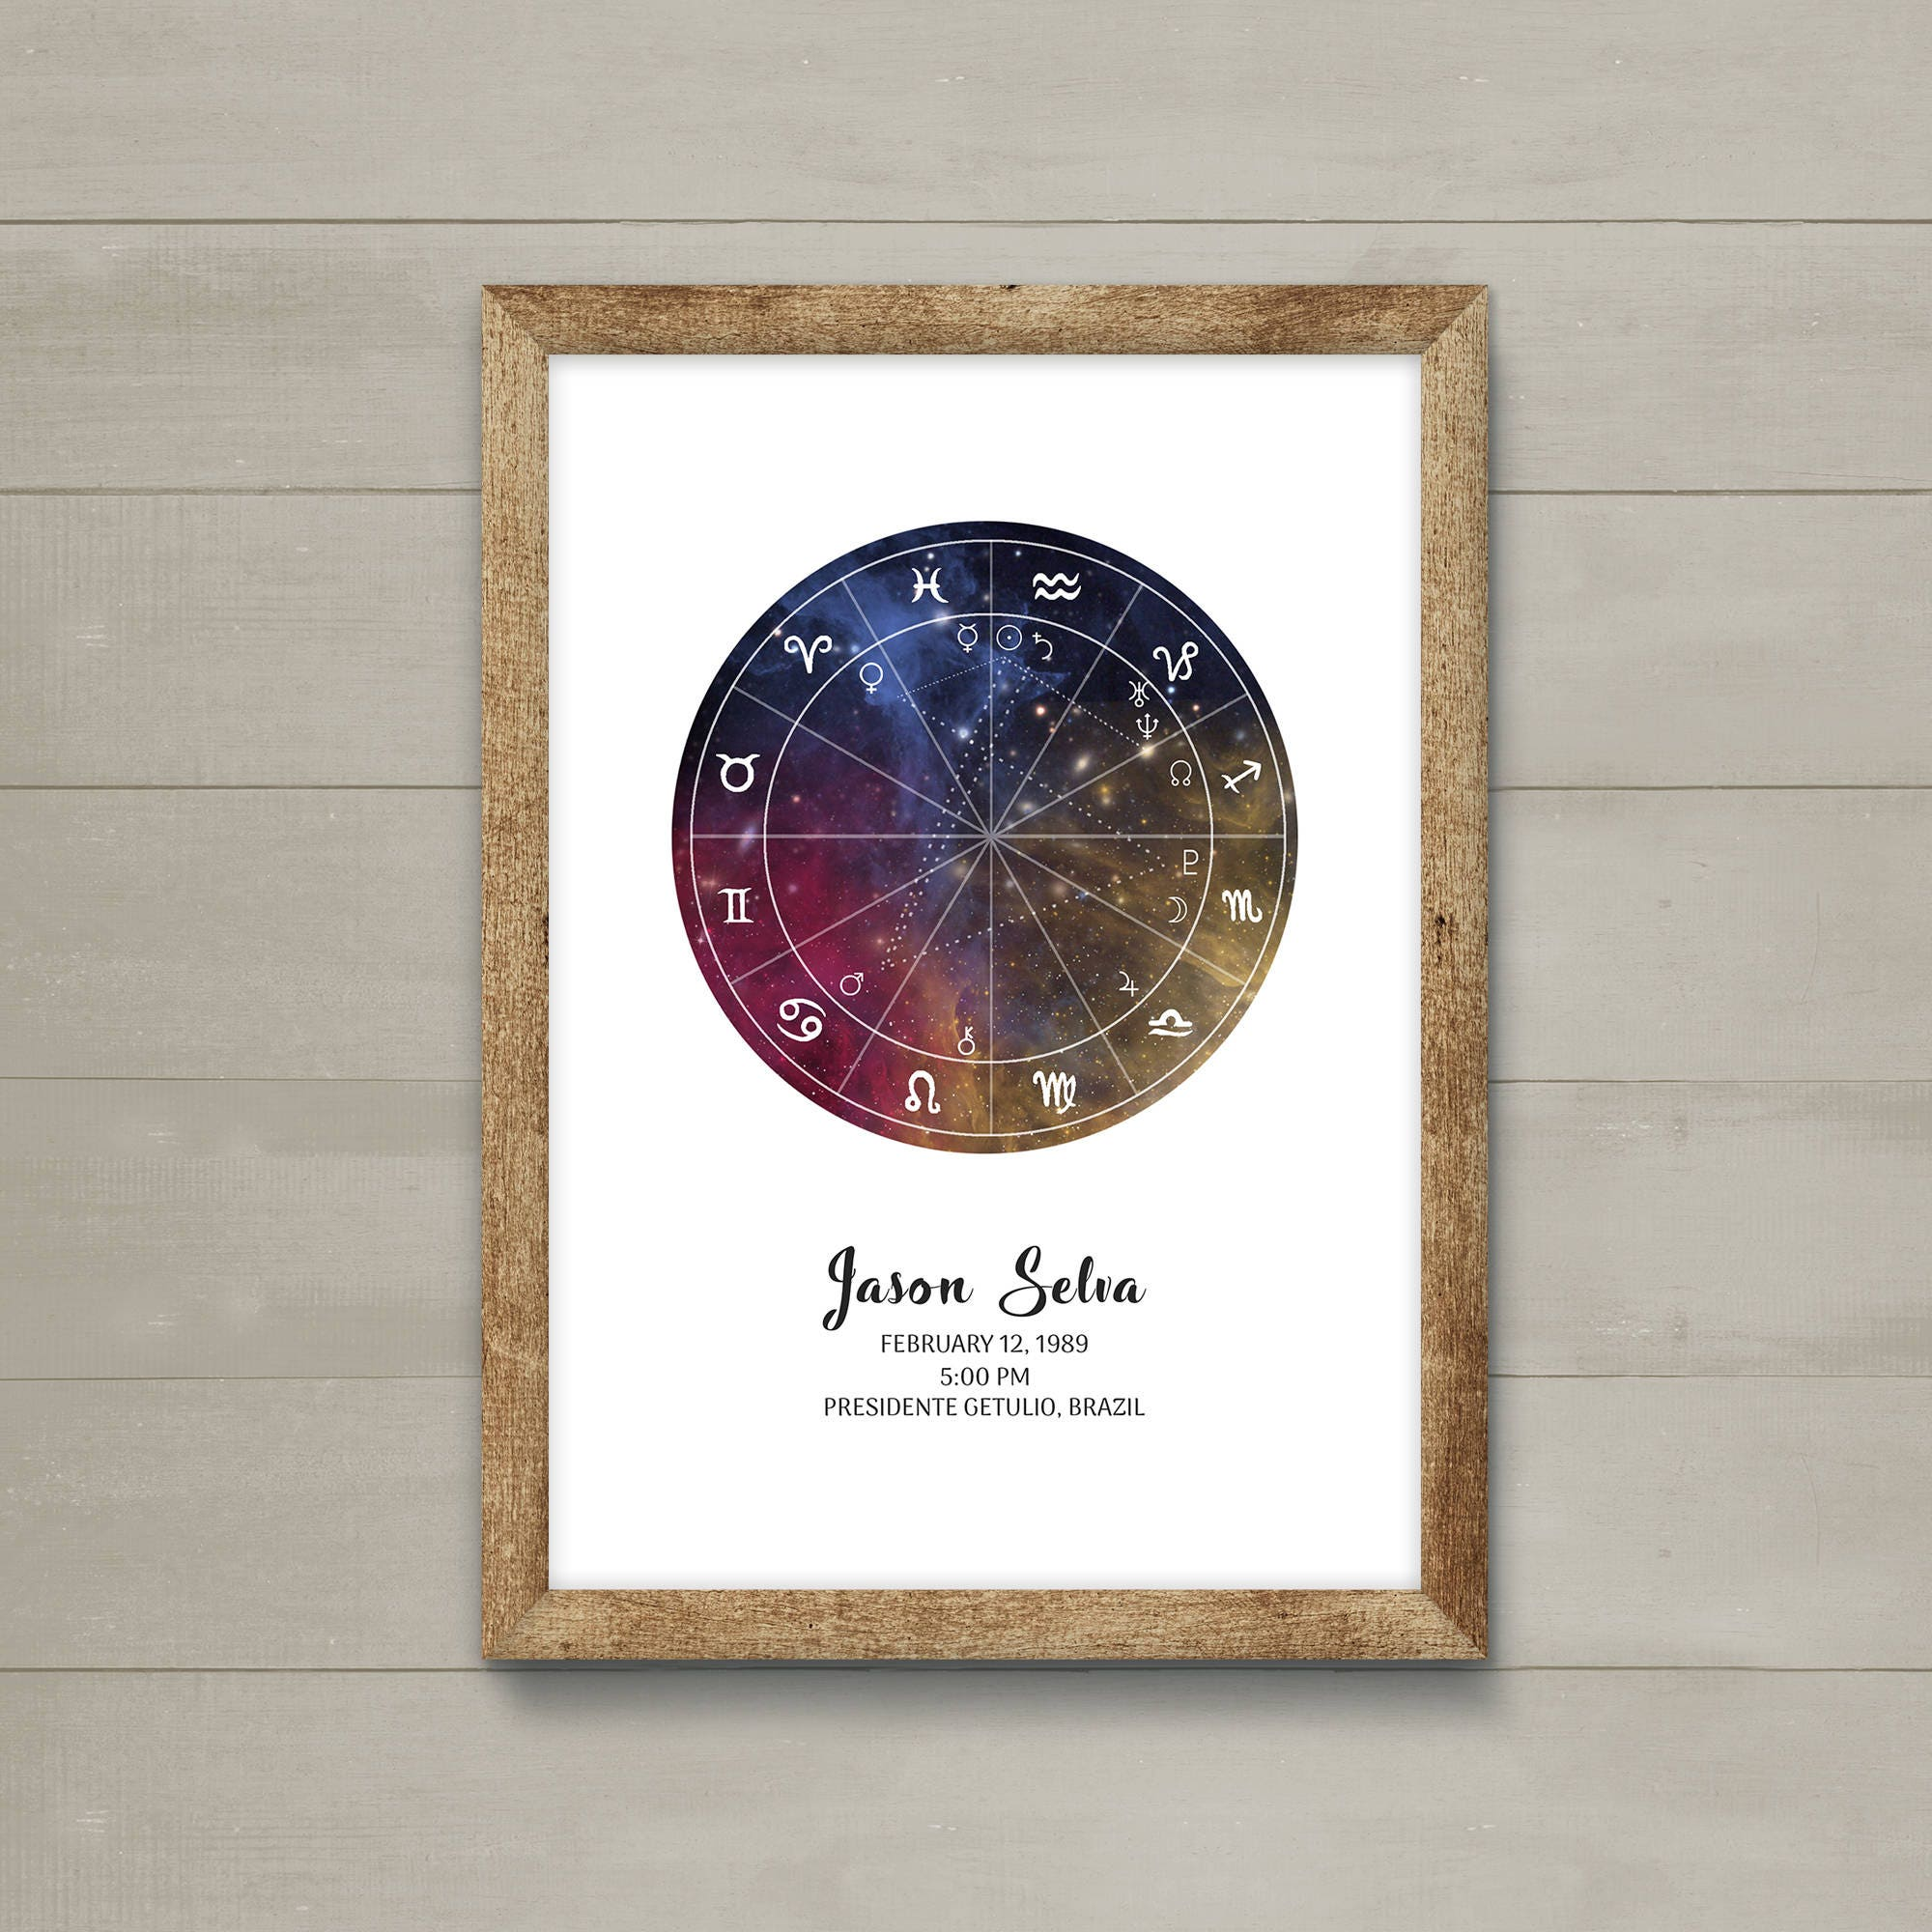 Full astrological chart free gallery free any chart examples full astrological chart free choice image free any chart examples full chart astrology image collections free nvjuhfo Image collections